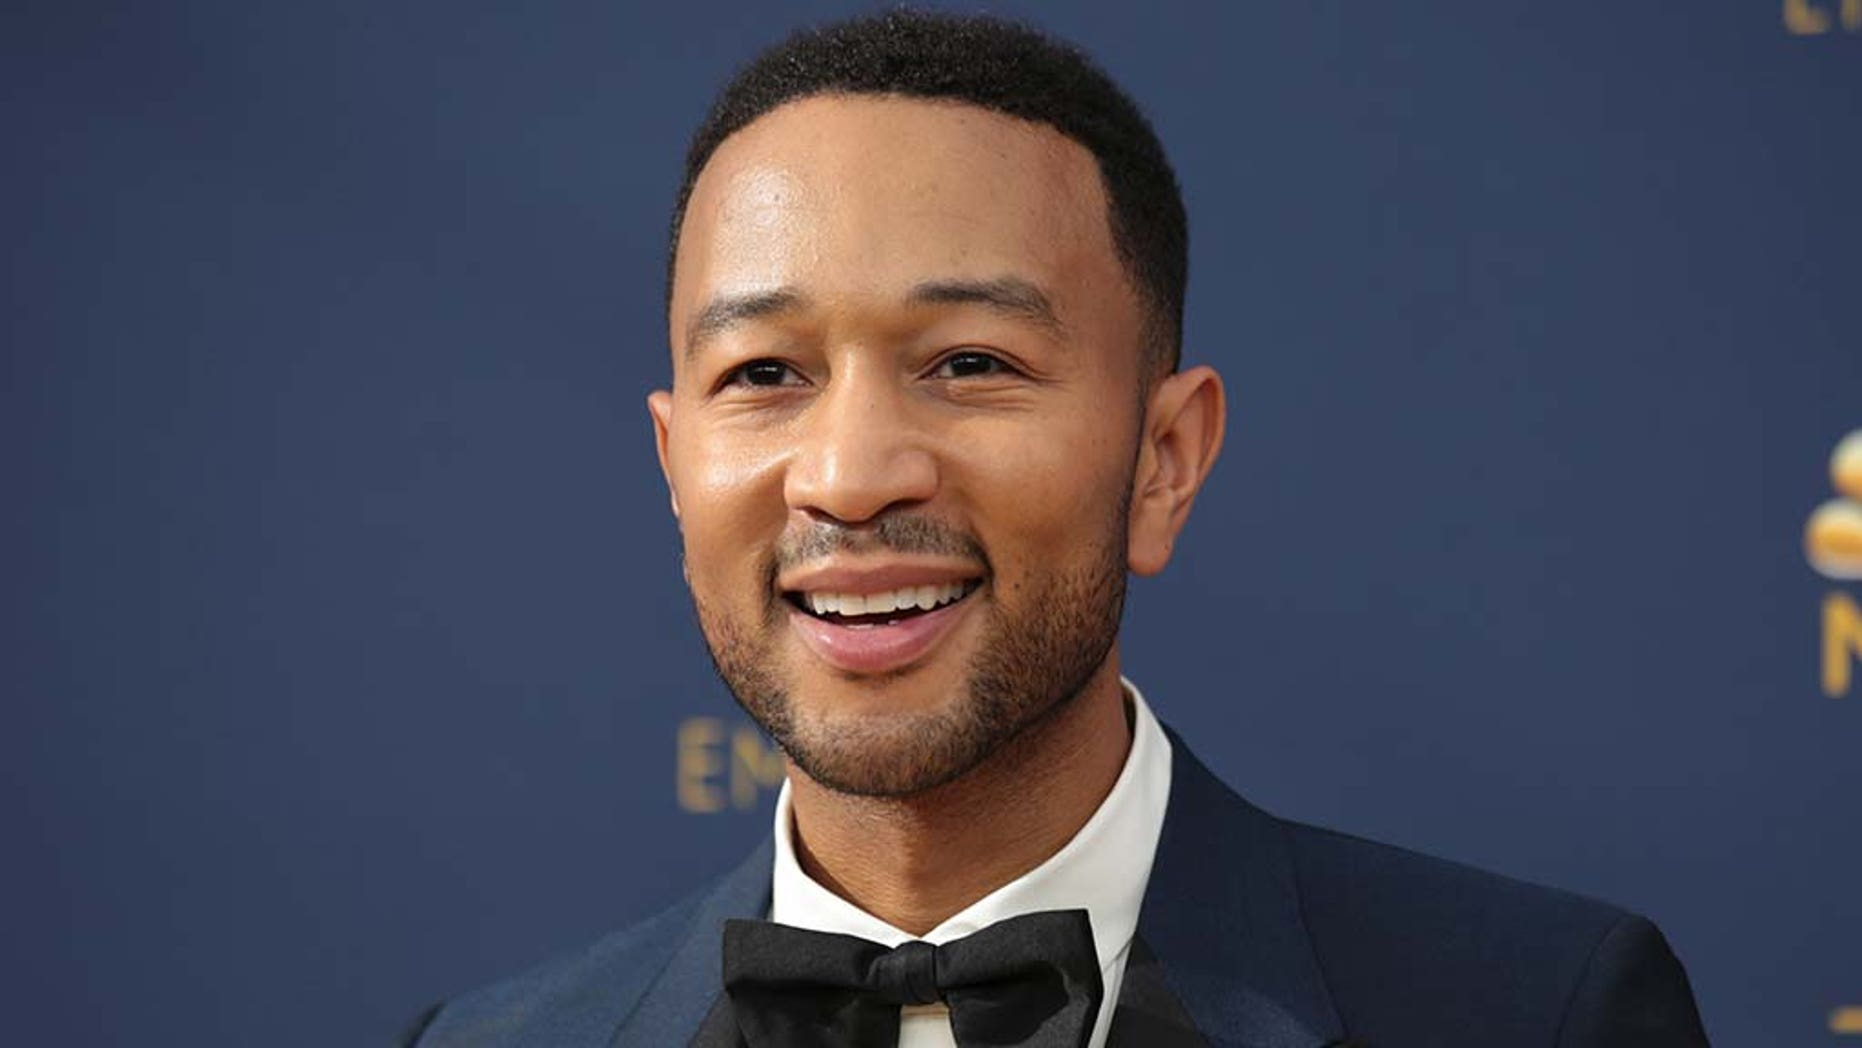 Singer John Legend is the newest voice of the Google Assistant, the tech company announced Wednesday. (REUTERS/Kyle Grillot - HP1EE9I02J8I0)